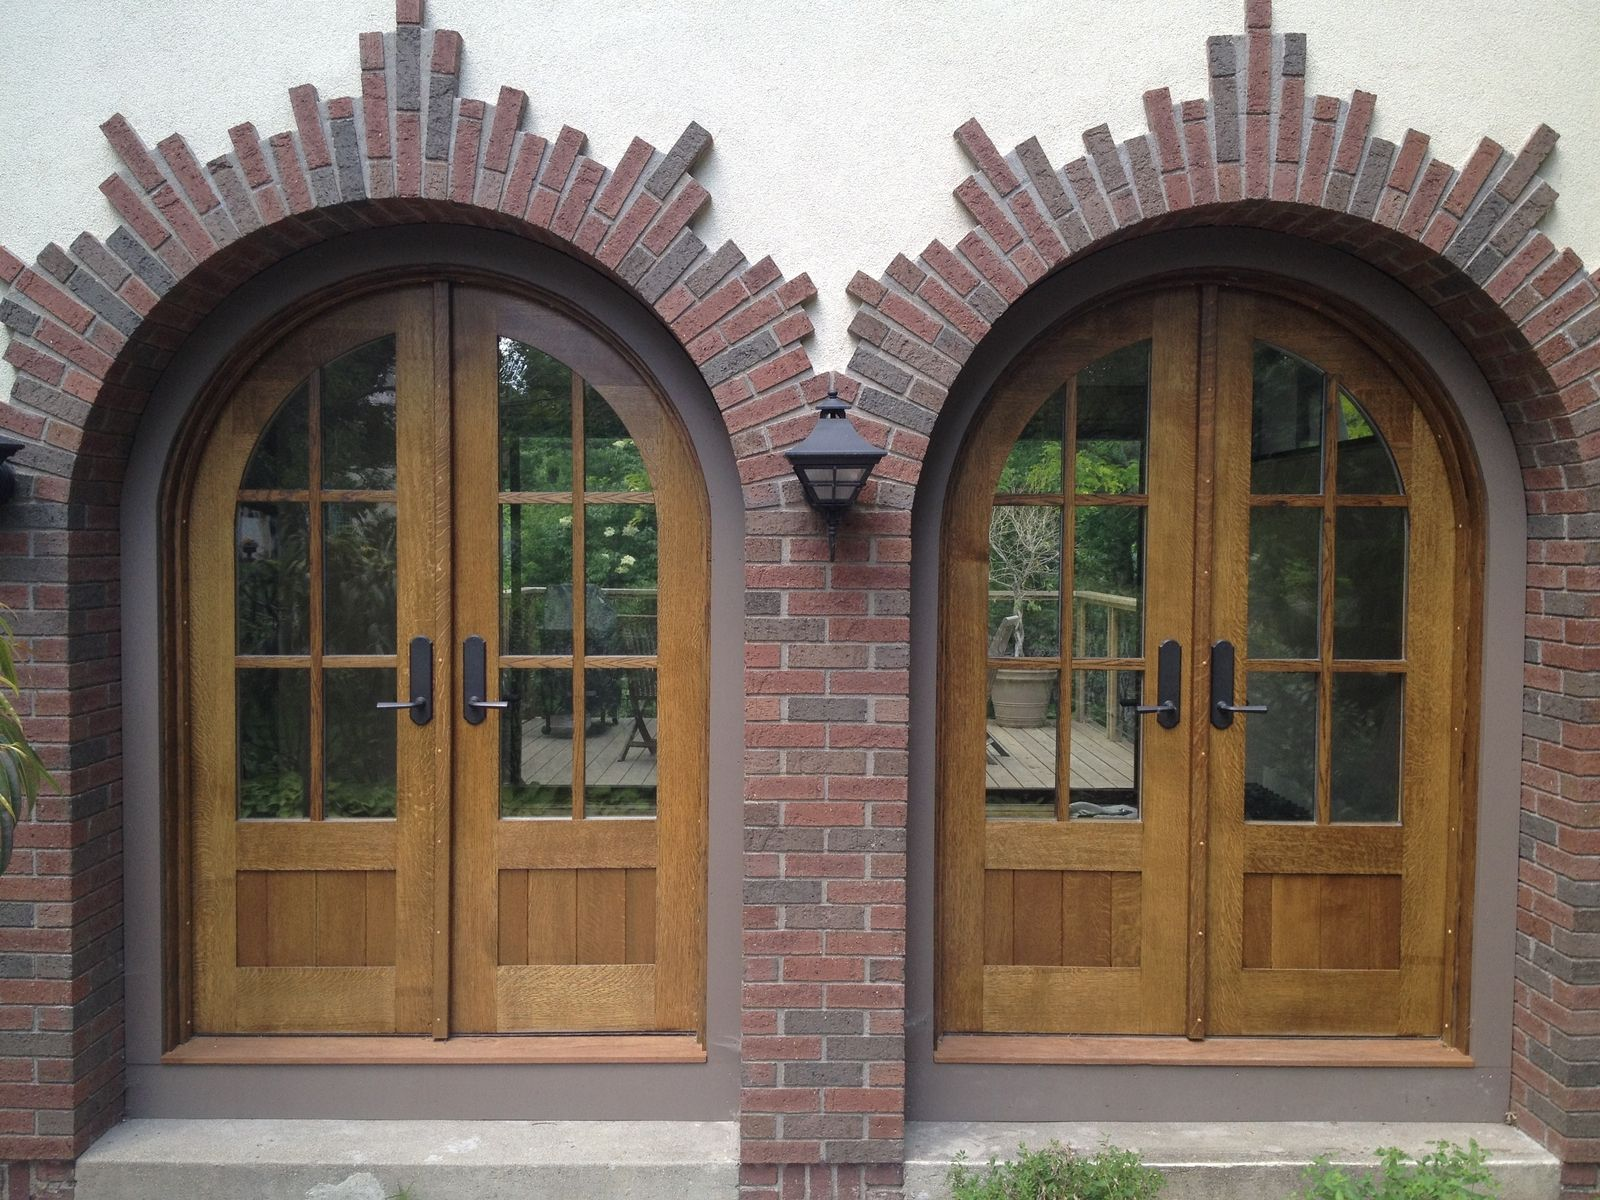 1200 #836440 Custom Made Arched Quarter Sawn White Oak Entry Doors save image Custom Made Entry Doors 45471600